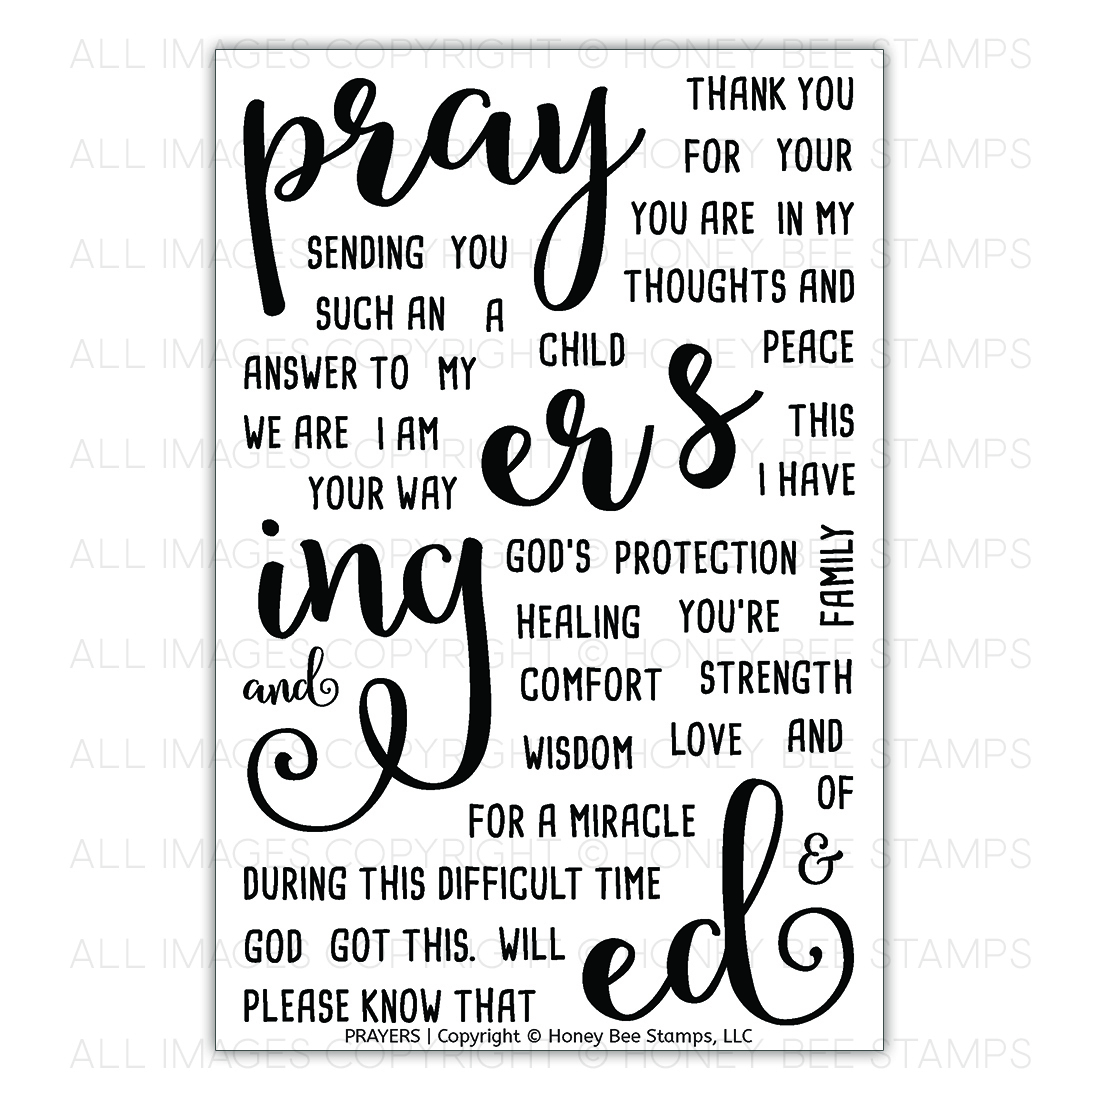 Honey Bee Stamps - Prayers | 4x6 Stamp Set